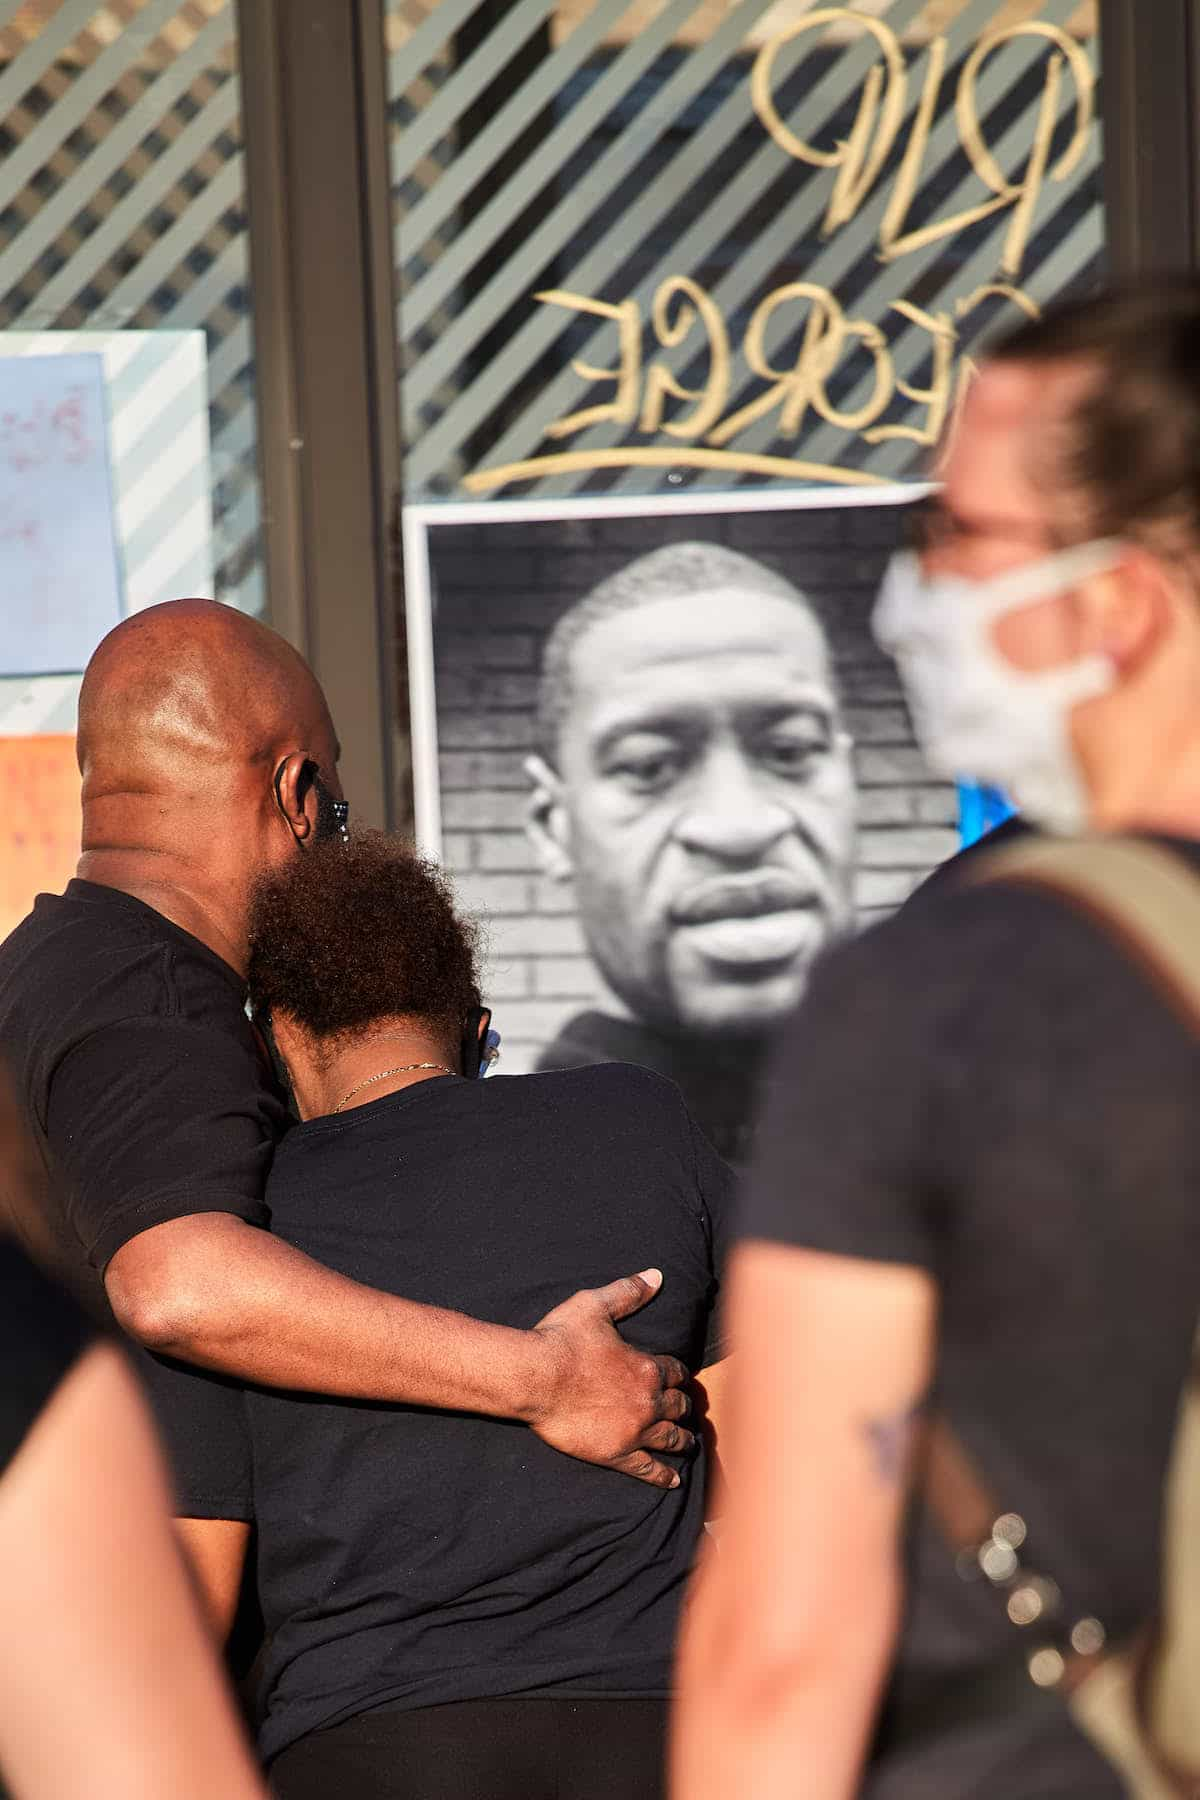 People Comforting Each Other at George Floyd Memorial in Minneapolis